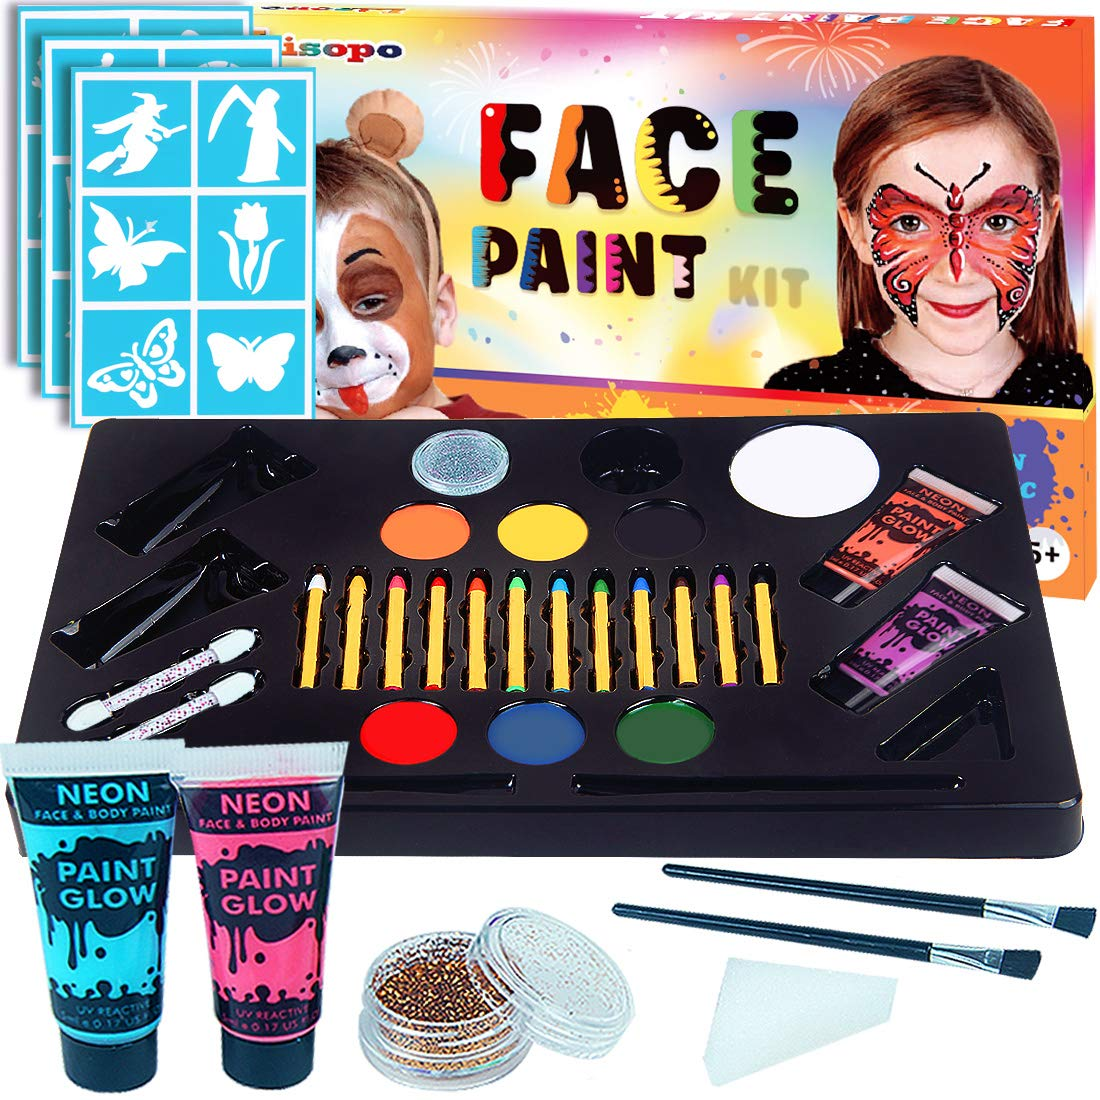 25 Colors Face Makeup Paint, LISOPO Makeup Facepainting Kits for Party Halloween: 12pcs Paintings Pencils + 7pcs Painting Colors + 4pcs UV Neon Paint + 2pcs Shine + 4pcs Brushes + 1pcs Sponge Triangle